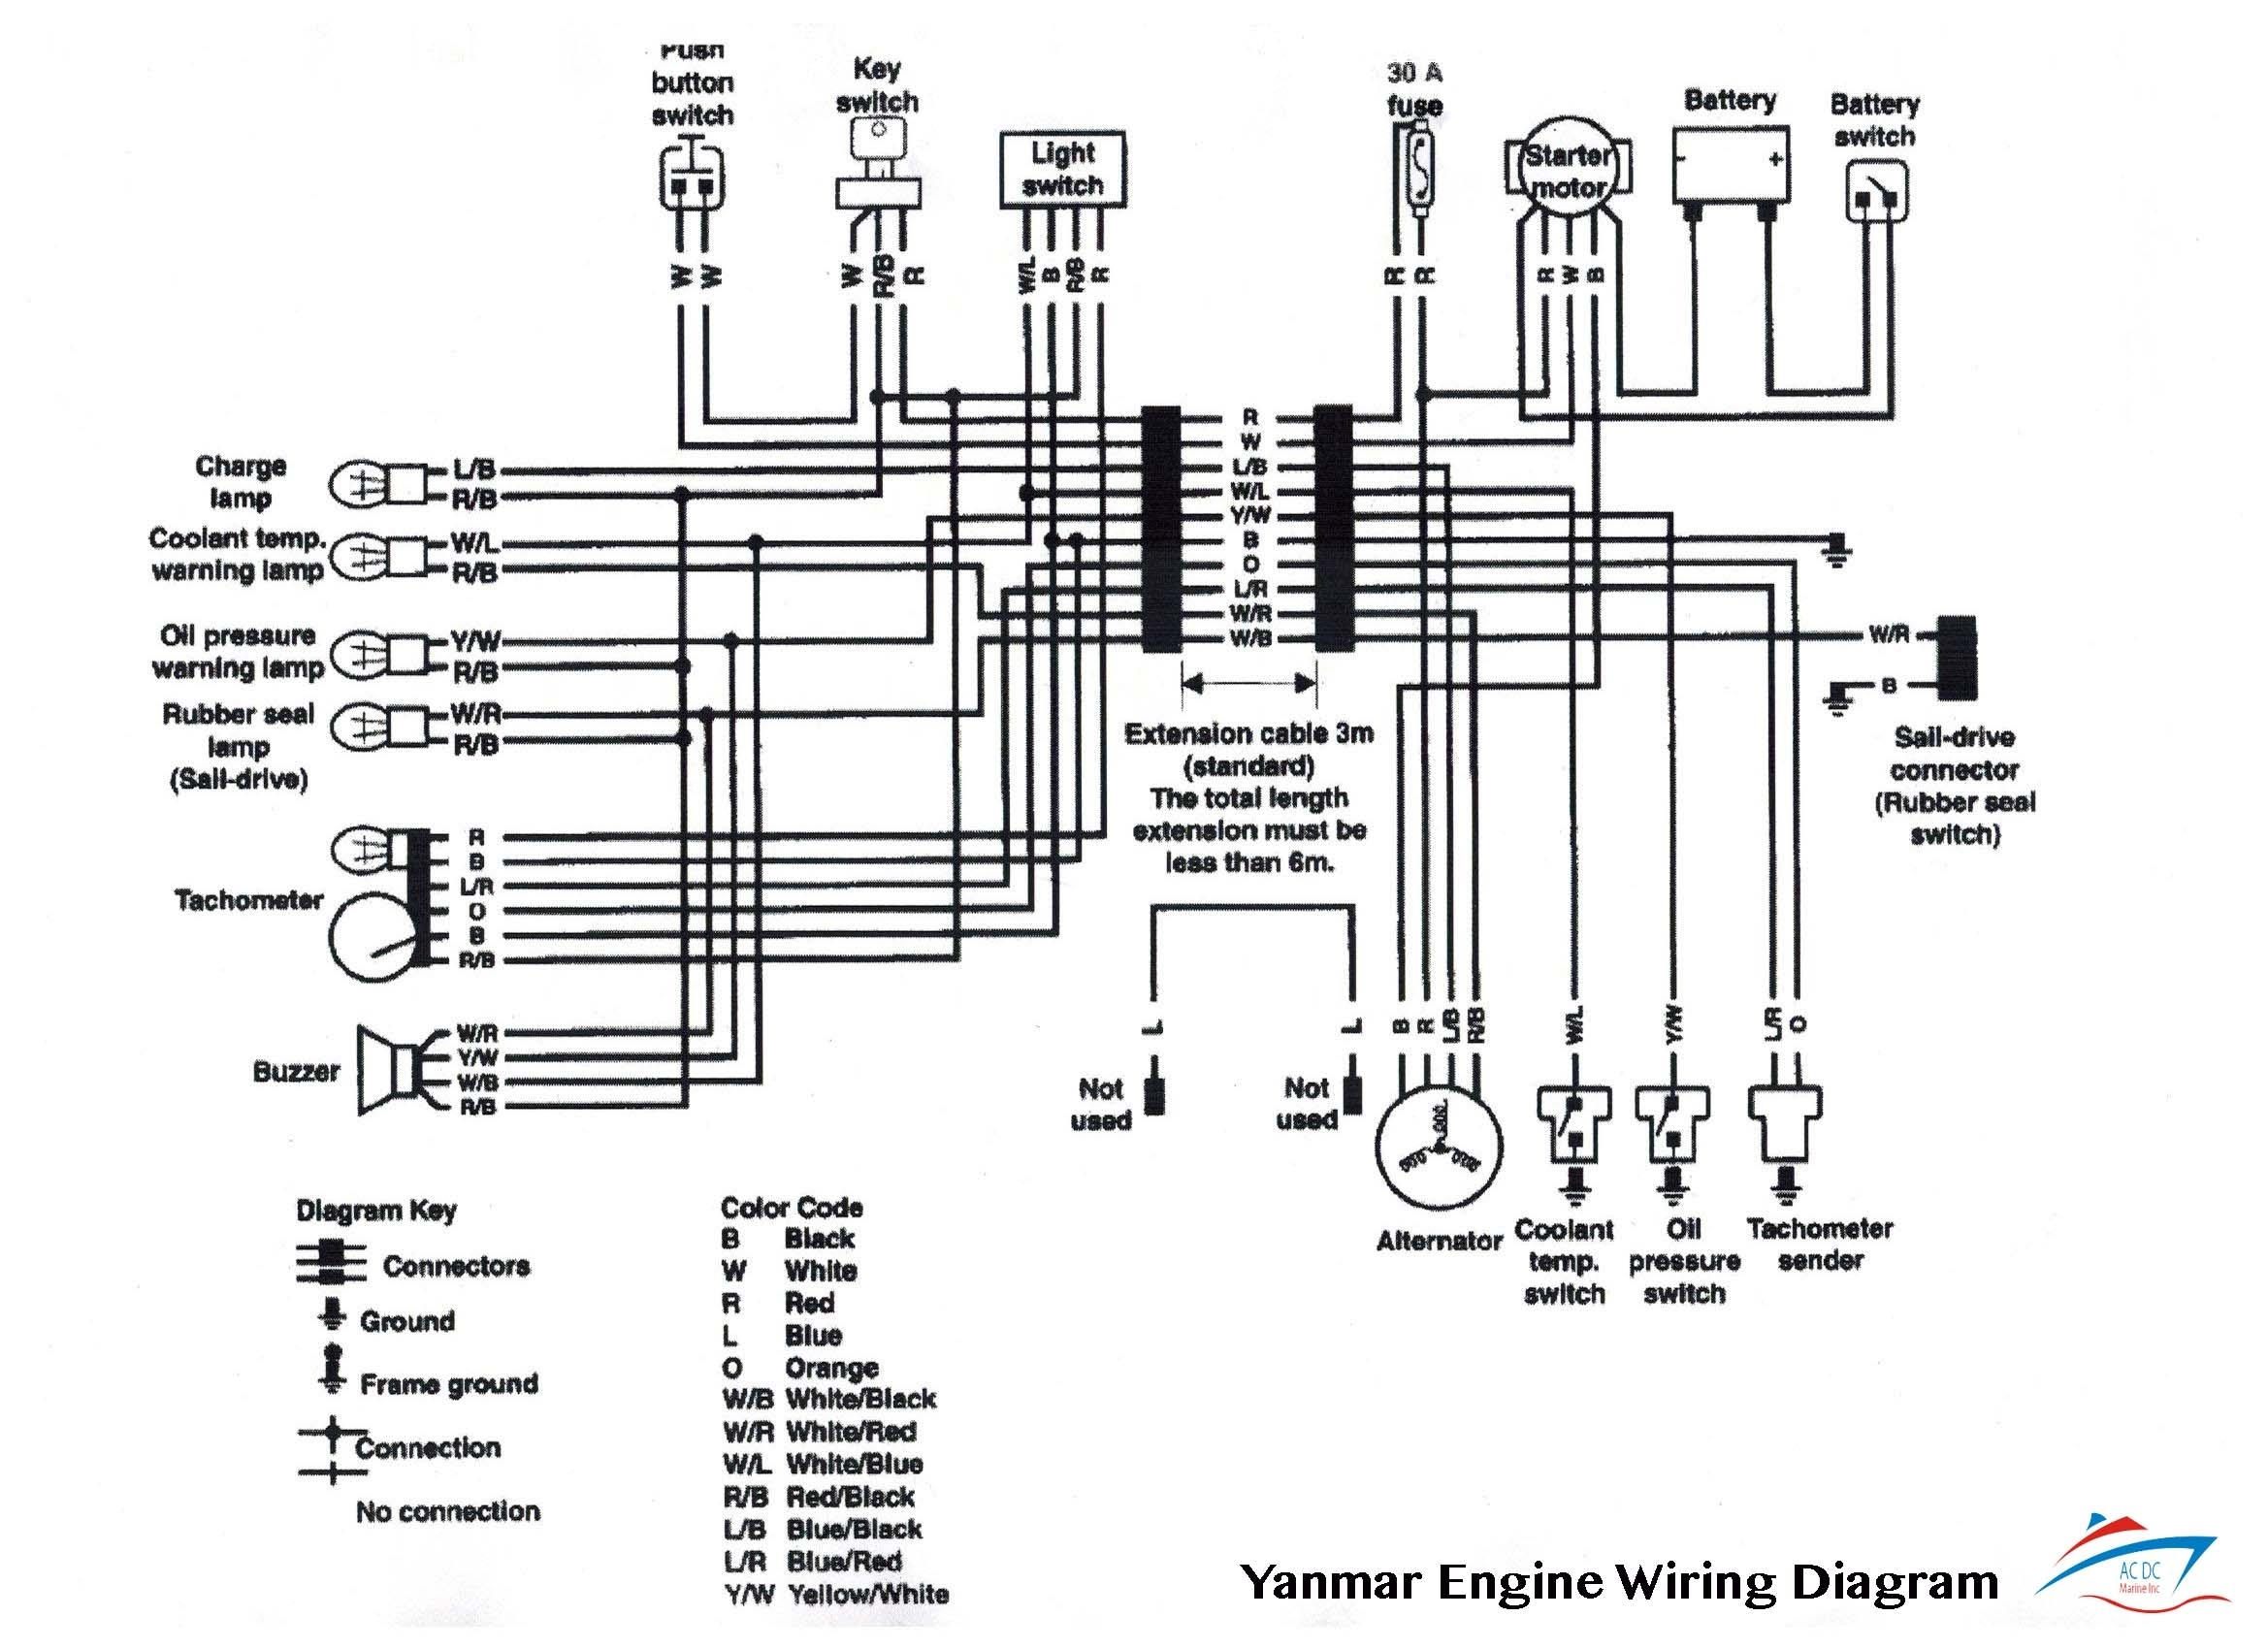 Boat Instrument Panel Wiring Diagrams Schematic Diagram Electronic Hewes